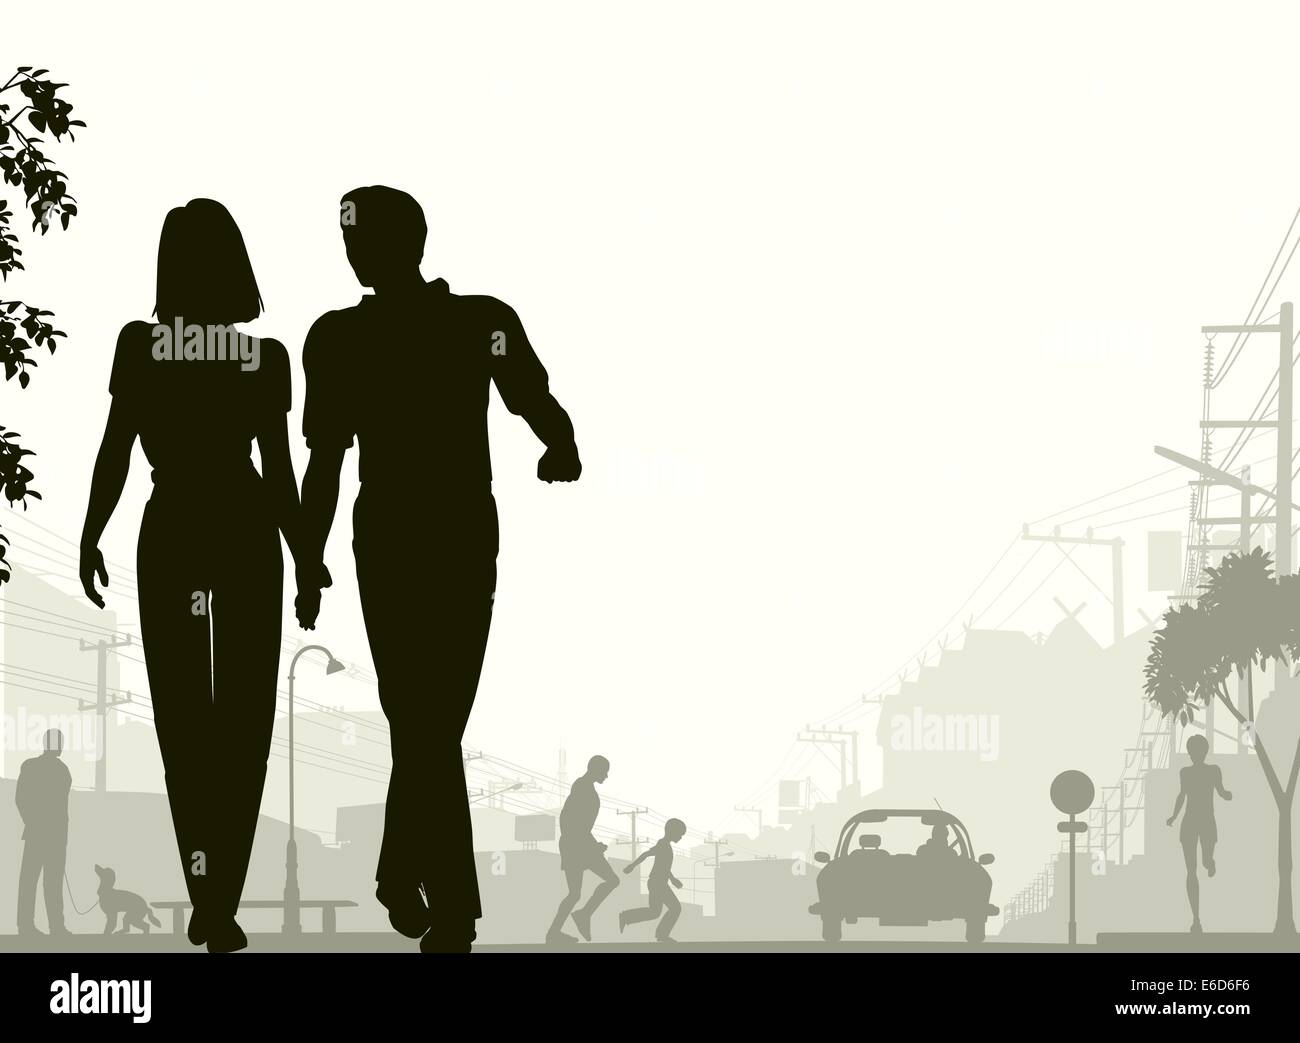 Editable vector silhouette of a couple walking down a street with all silhouette elements as separate objects. - Stock Vector